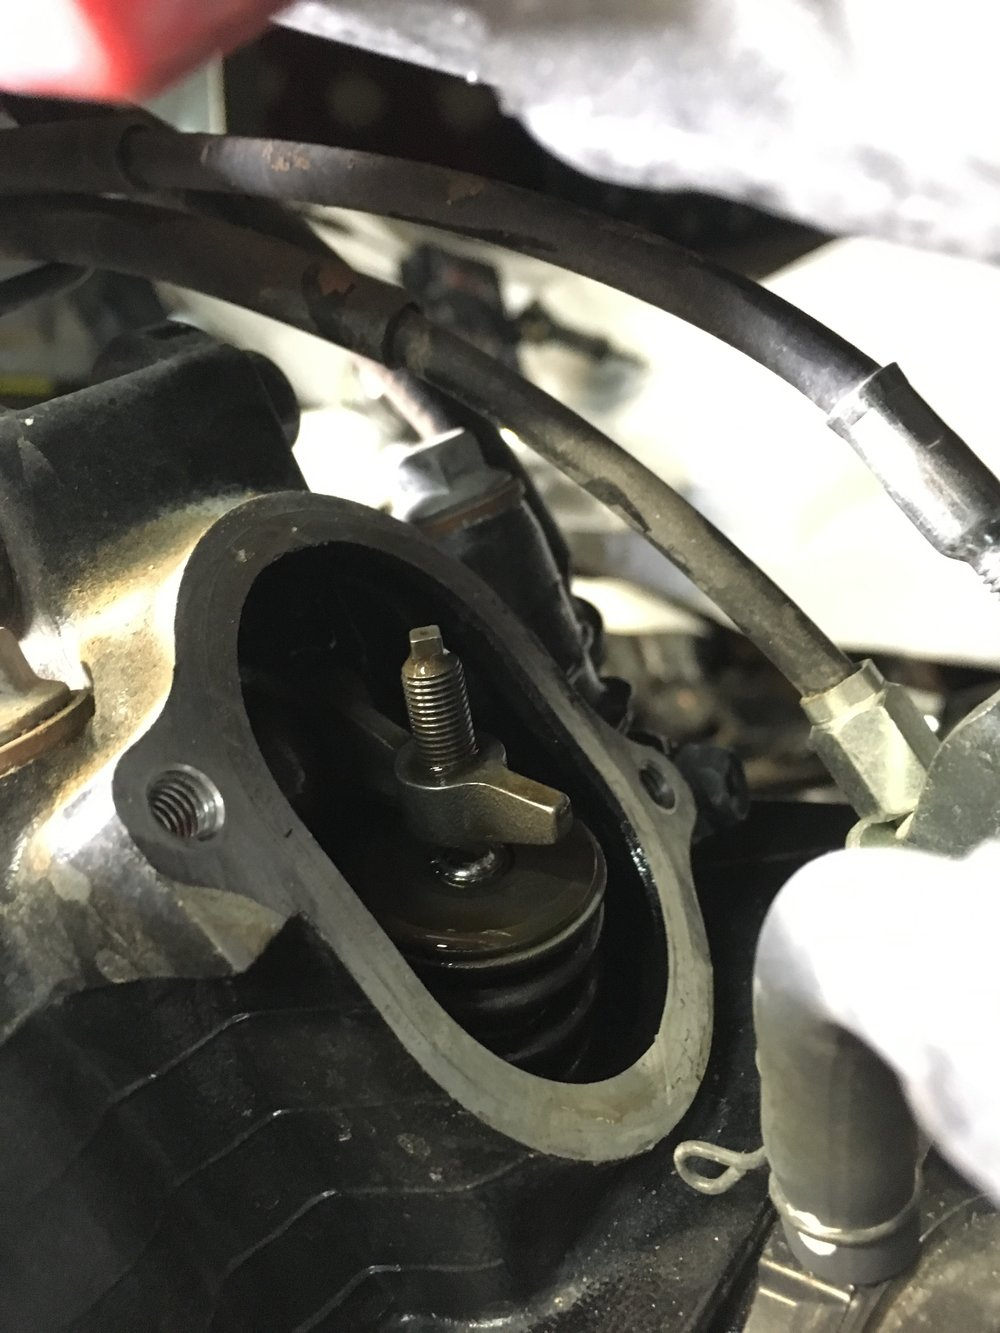 The culprit on the TW200 was a missing locknut on the valve adjuster. The nut was fished out of the head with a magnet, replaced, valves adjusted and the bike runs like new.